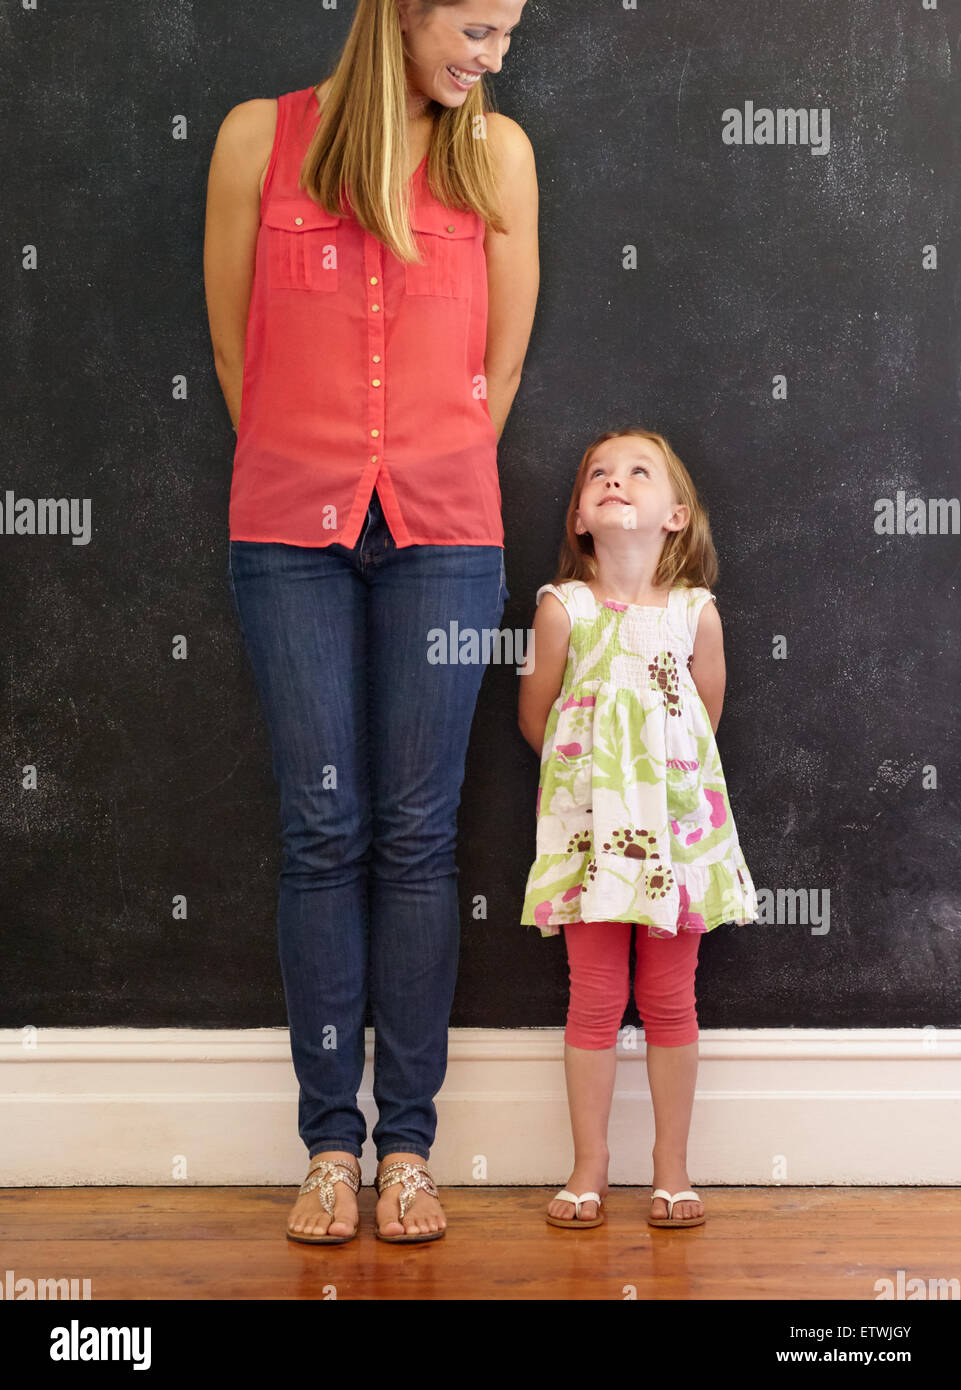 Indoor shot of little girl standing with her mother at home. Mother and daughter looking at each other smiling. - Stock Image